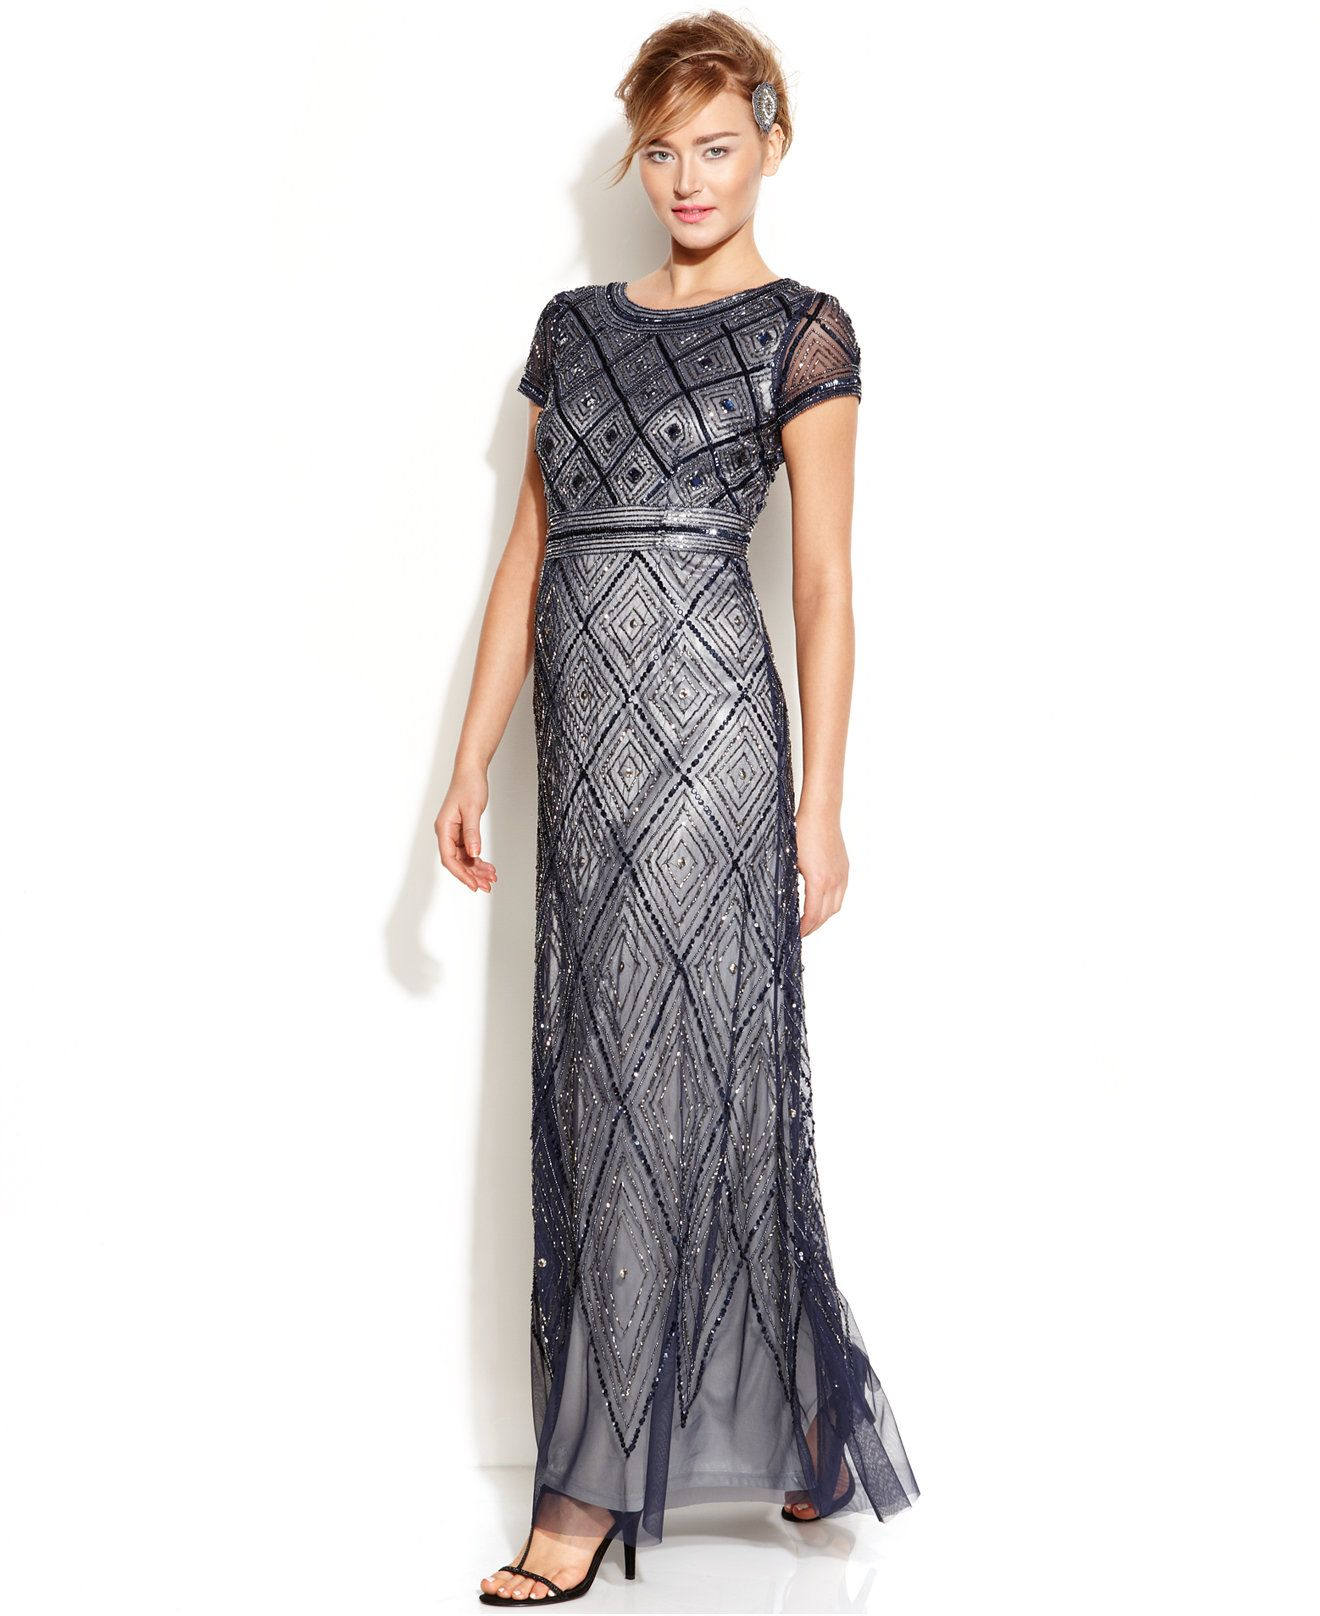 Adrianna papell capsleeve beaded illusion gown dresses women